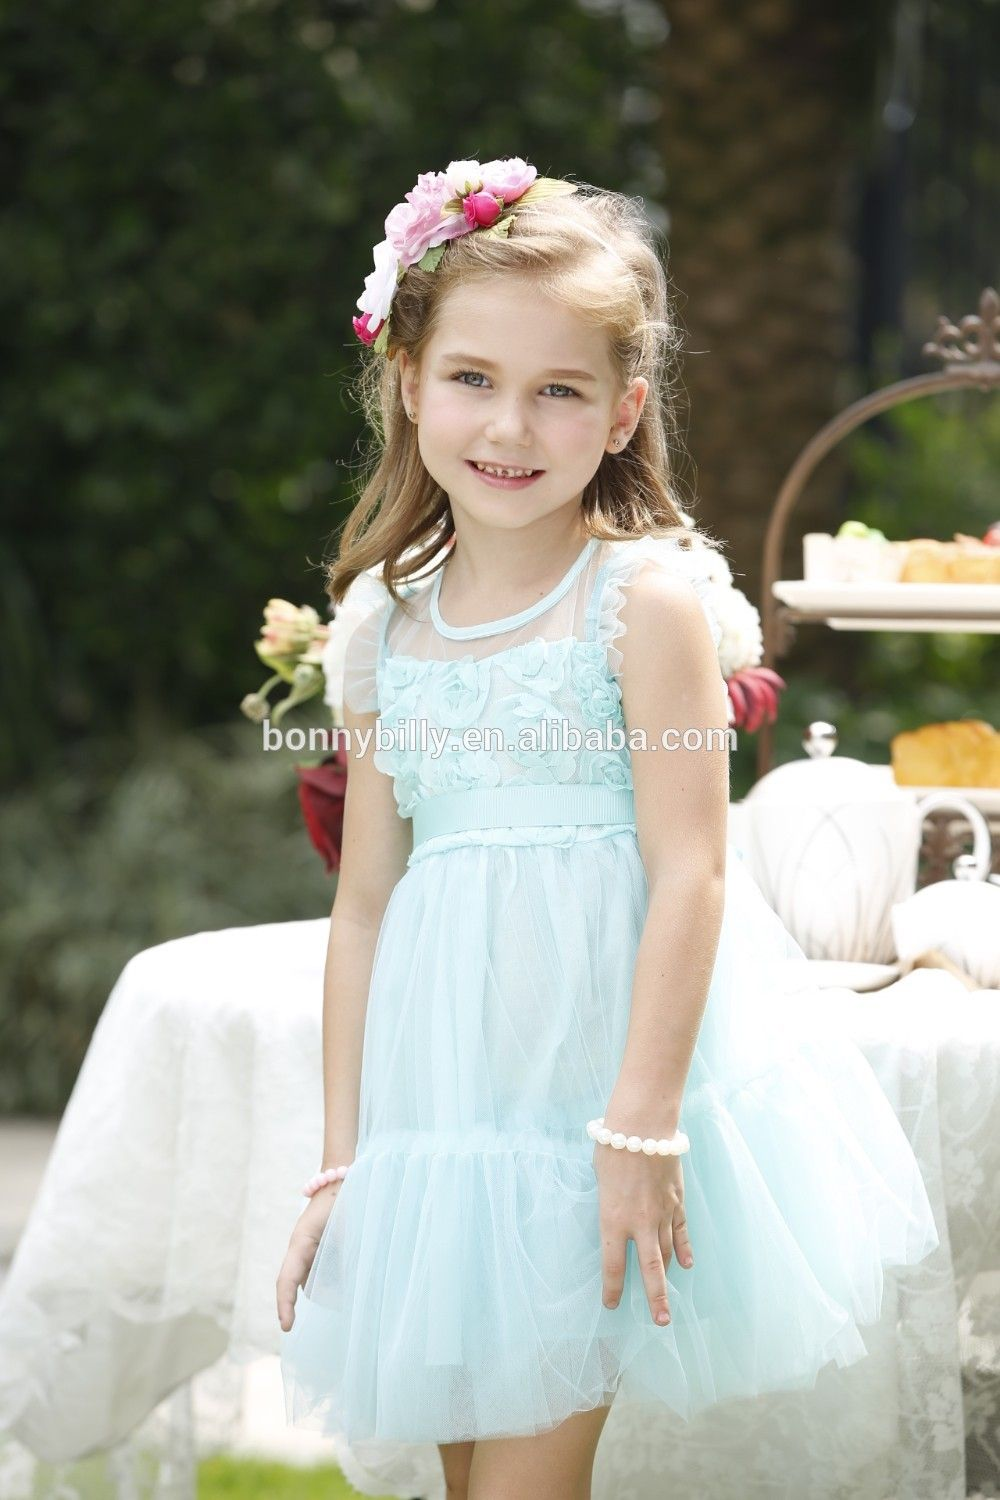 ca0948d35 Fancy Flower Net Dresses for Girl of 5 Years Old,Baby Frock Dress for Party